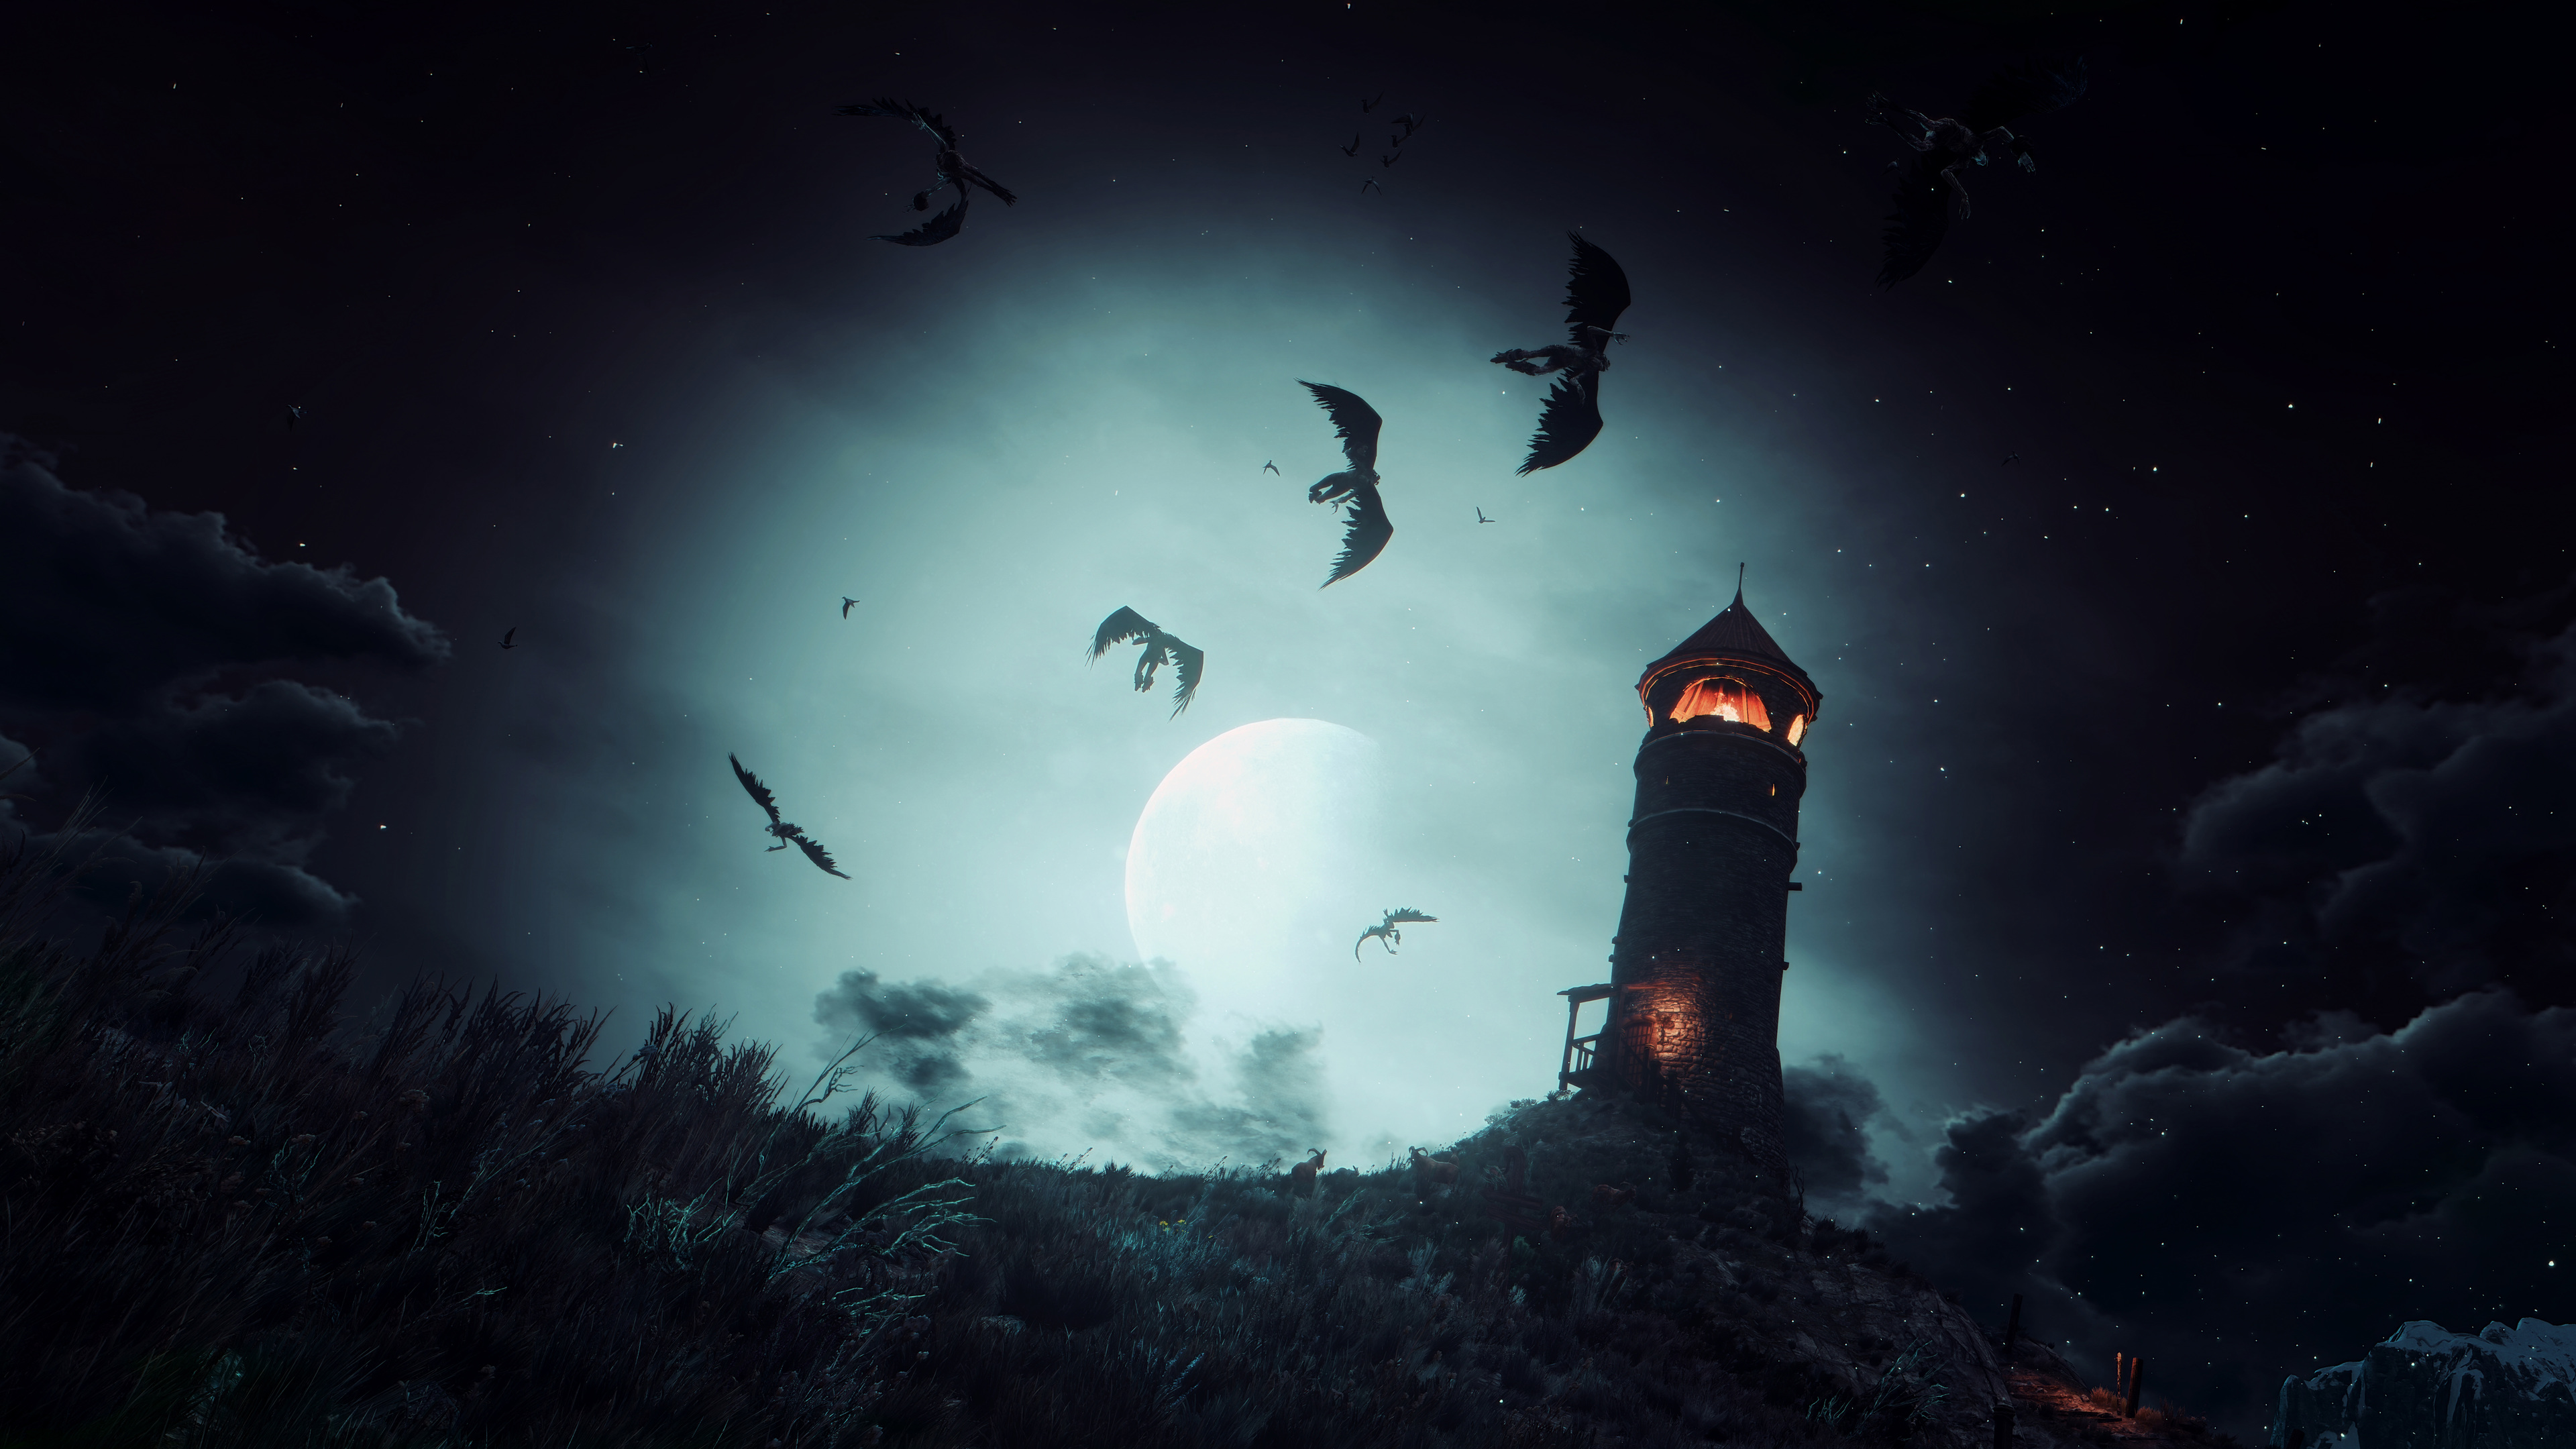 10k the witcher 3 evening moment 1537691574 - 10k The Witcher 3 Evening Moment - xbox games wallpapers, the witcher 3 wallpapers, sword wallpapers, ps4 games wallpapers, pc games wallpapers, hd-wallpapers, games wallpapers, 8k wallpapers, 5k wallpapers, 4k-wallpapers, 10k wallpapers